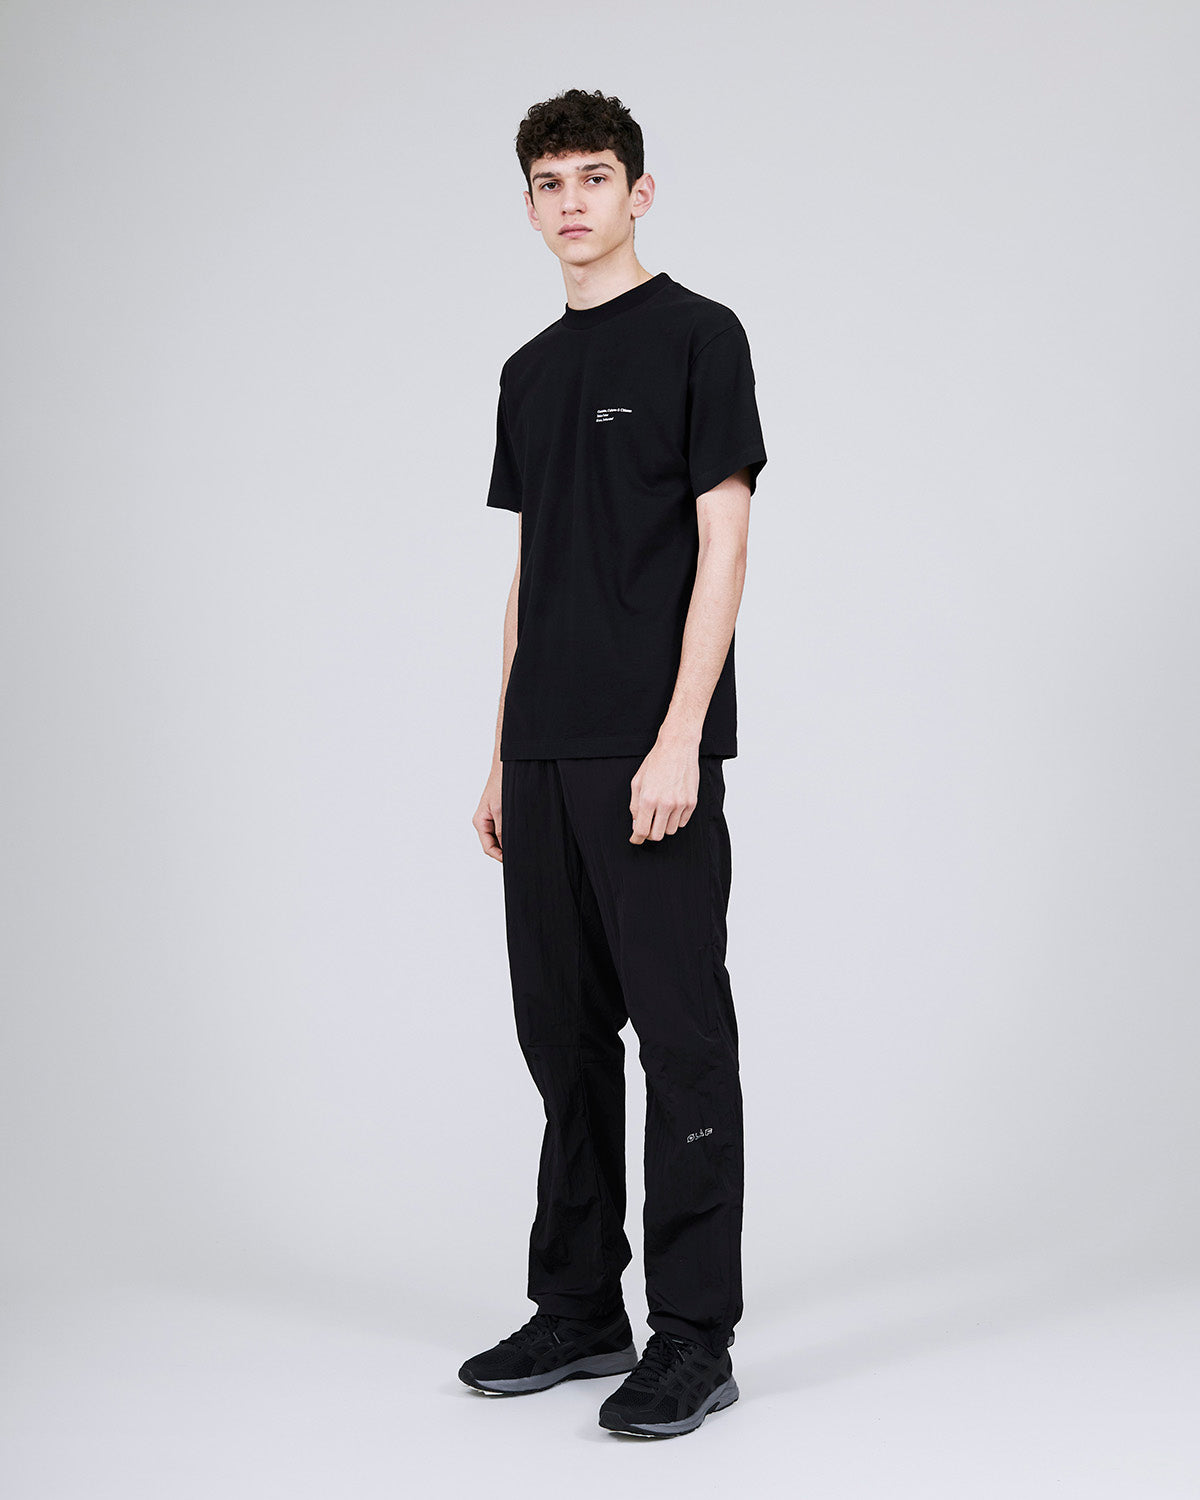 ØLÅF x Halal T - Tobias Faisst Black, Portuguese fabric, 100% cotton (220 grams/sqm), Post wash, Fine ribbed collar, Made in Portugal